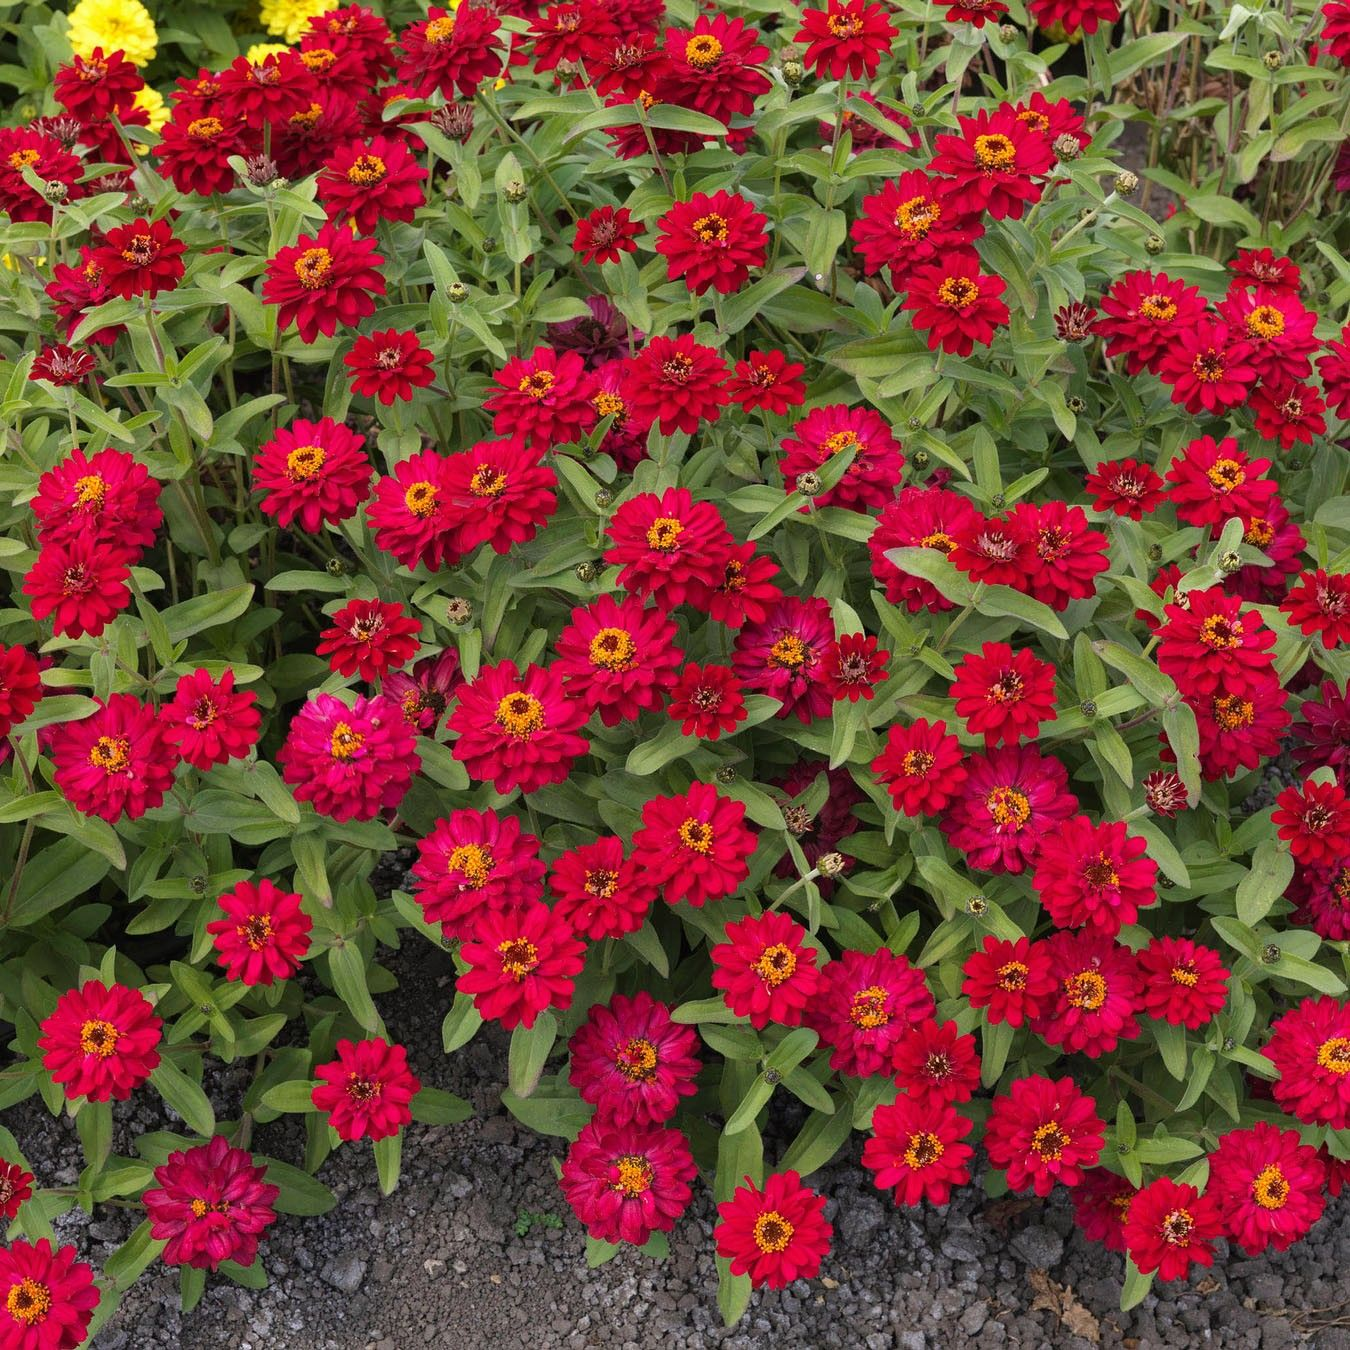 Zinnia Profusion Double Hot Cherry - Zinnia hybride double